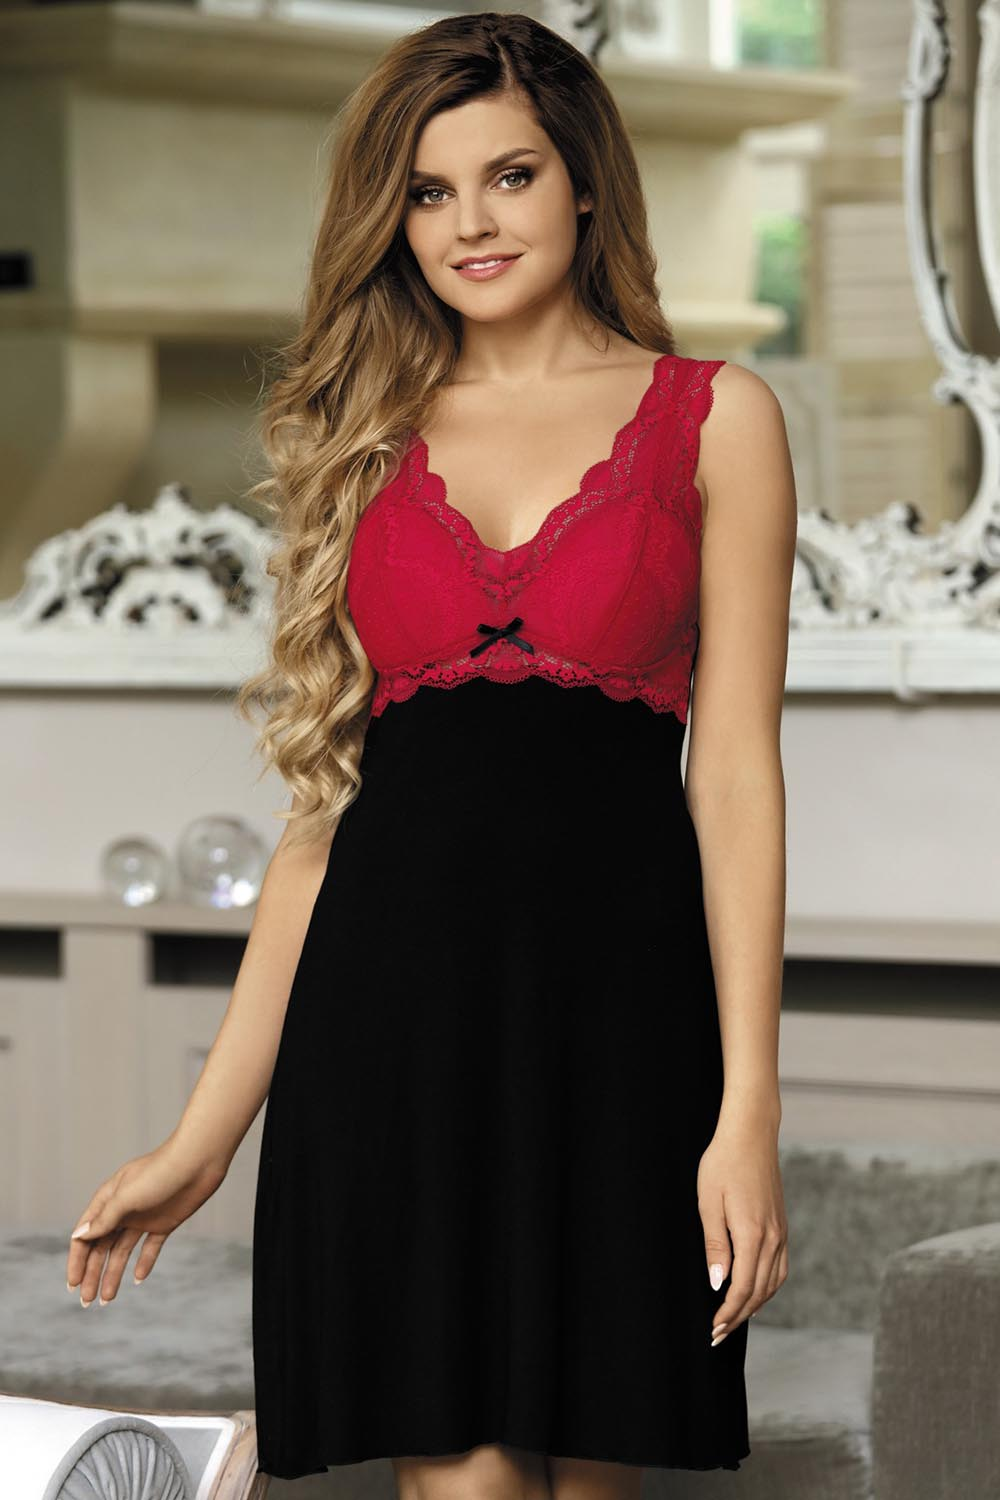 ... Babella Larisa women s nightdress lace padded cups chemise v neck ... 951ca0868